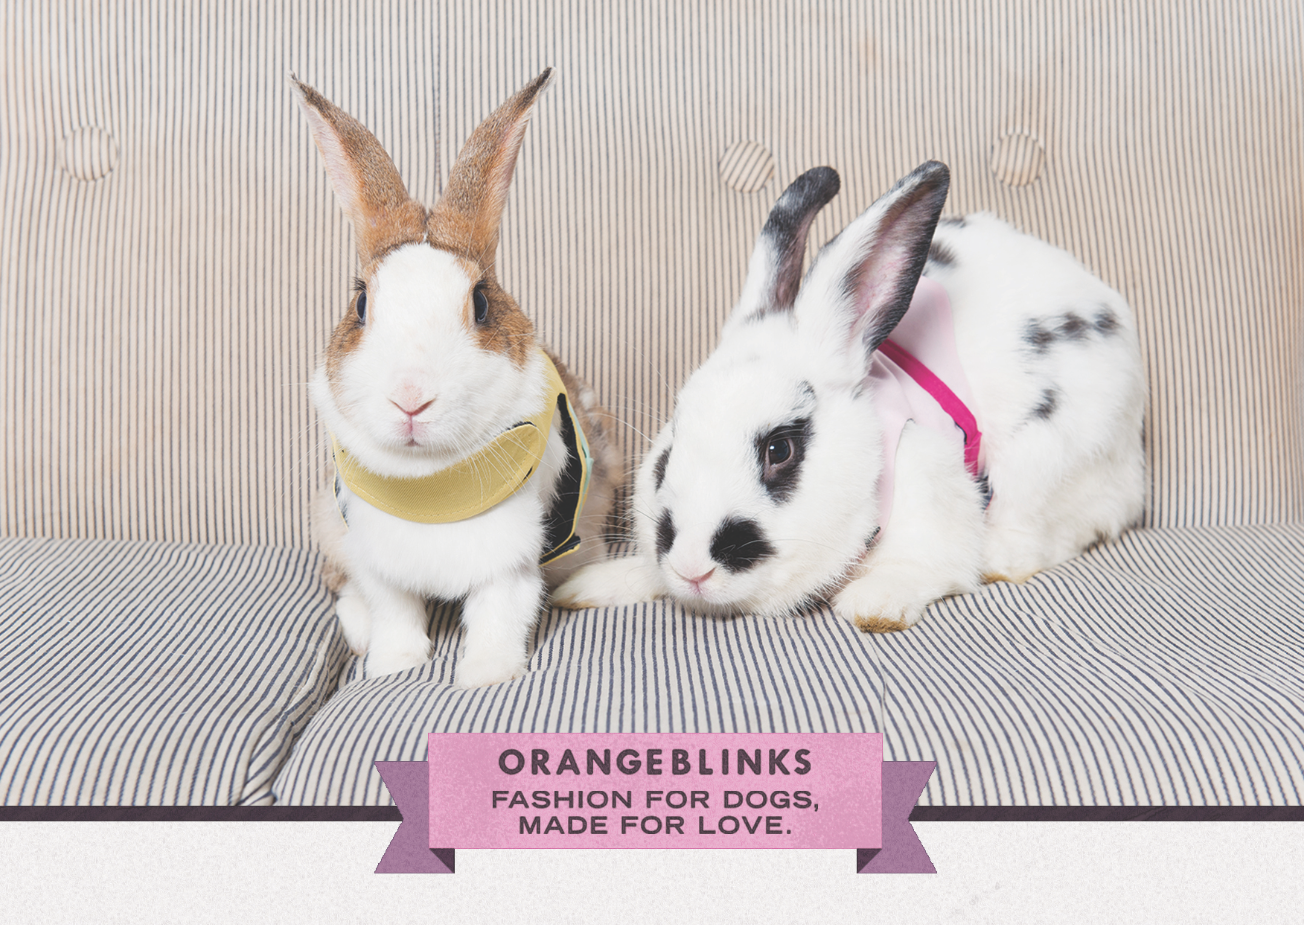 Orange Blinks pets fashion